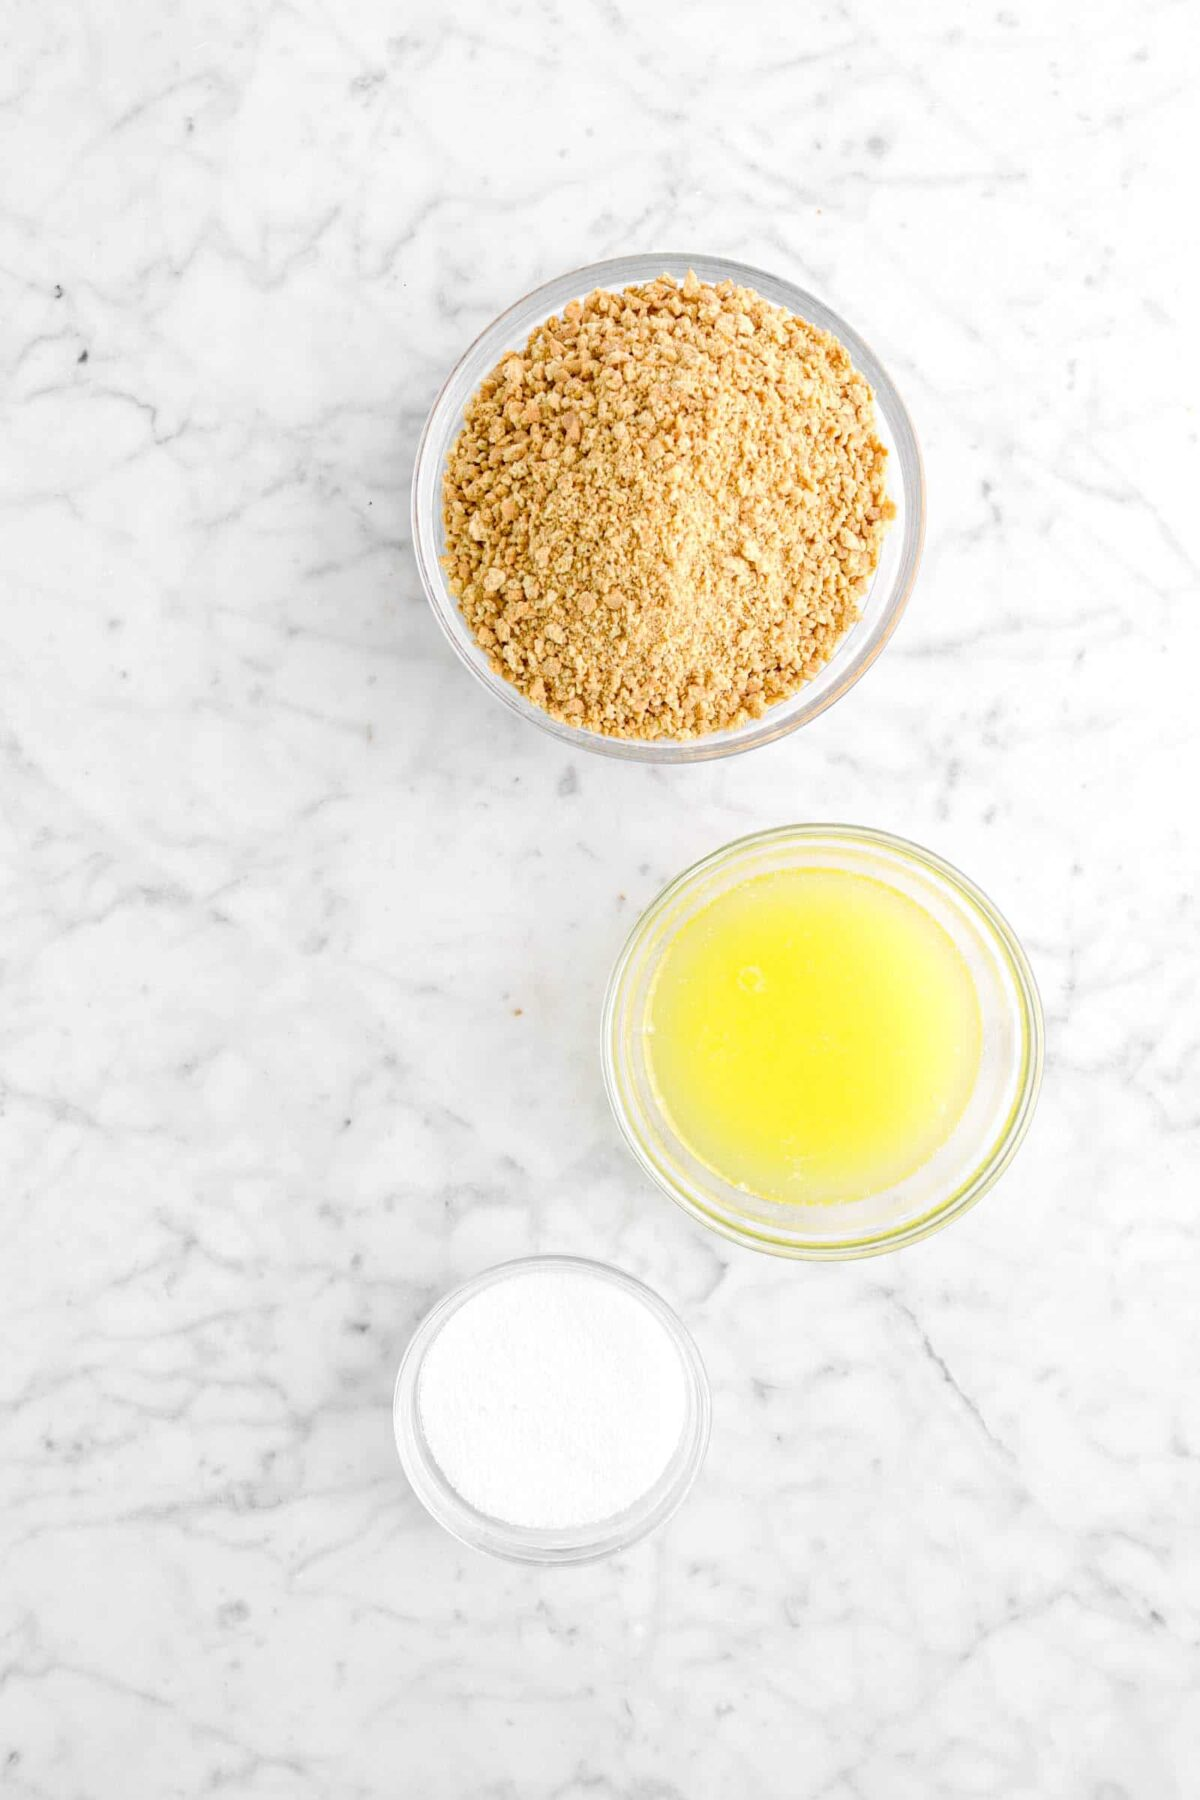 graham cracker crumbs, melted butter, and sugar on marble counter